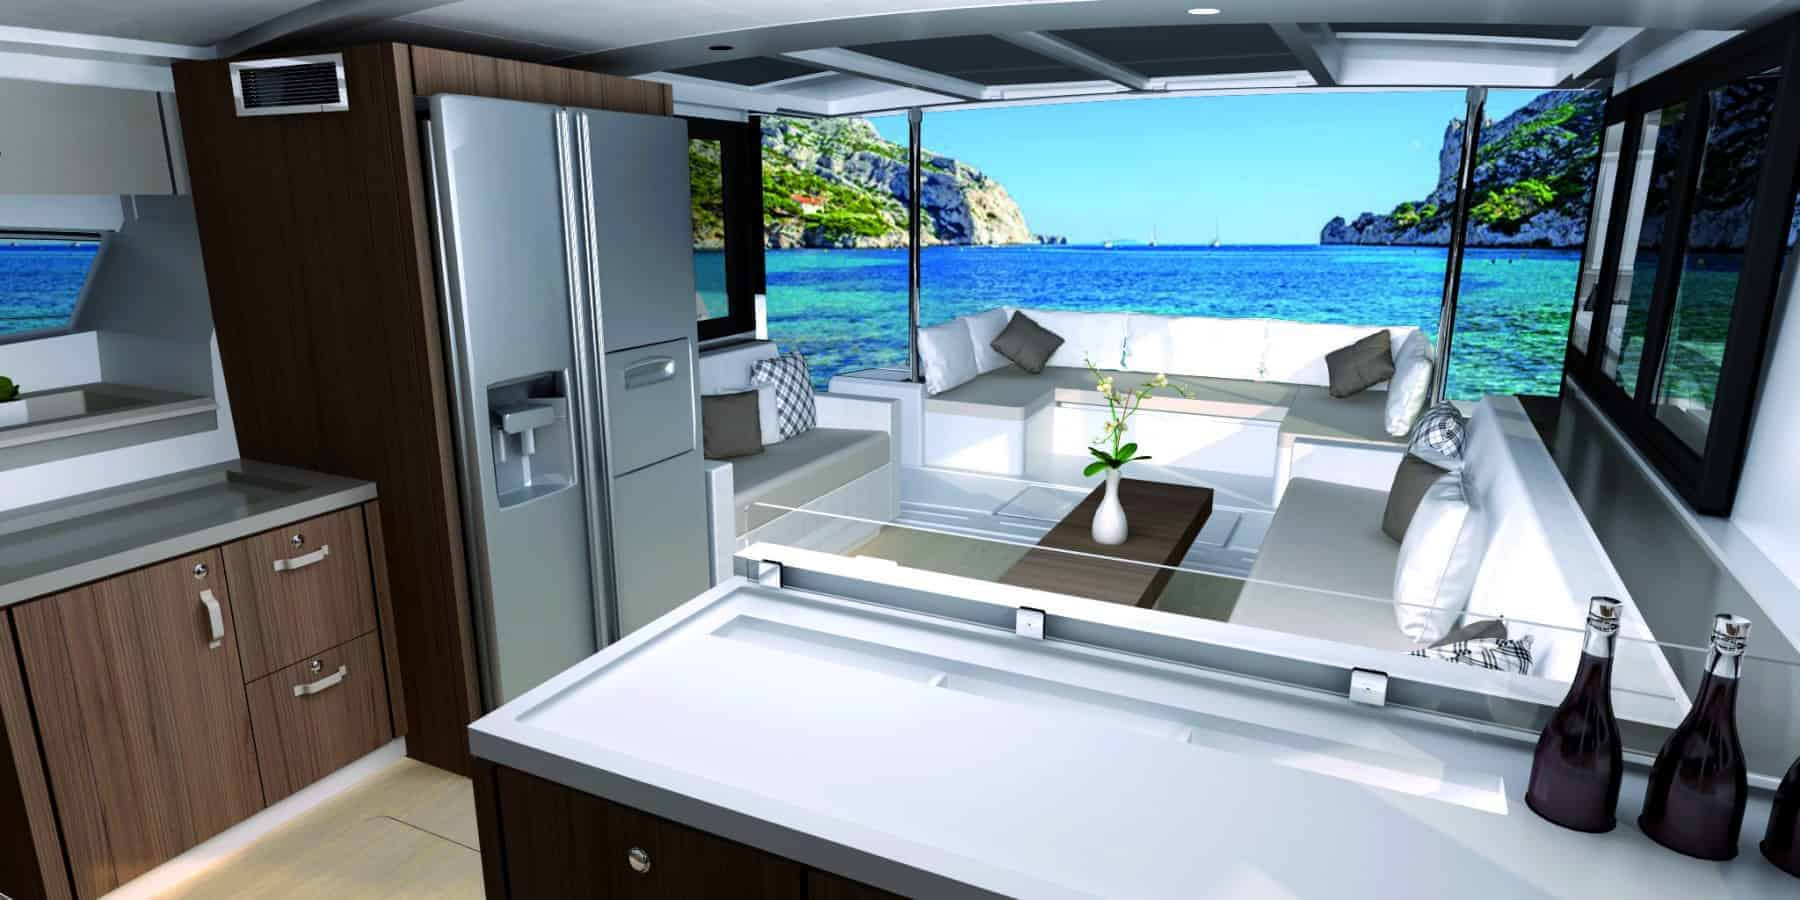 White galley countertop in the foreground with an overview of the elegant fridge and freezer and saloon of the Bali 4.3 MY Revolutionary